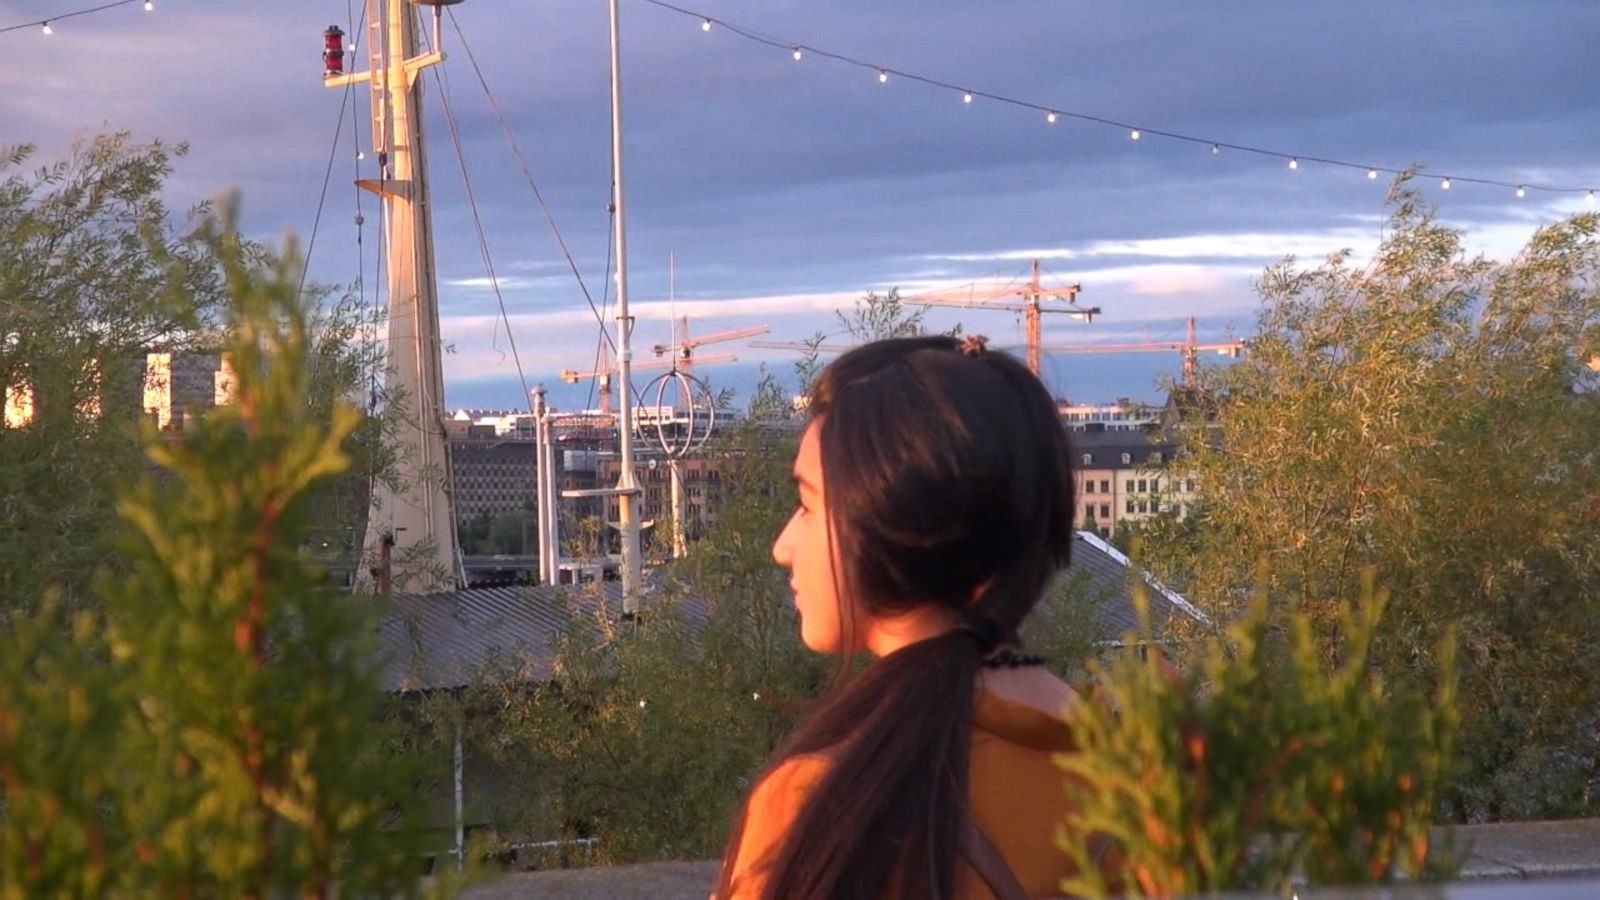 VIDEO: Life After ISIS: One Girl's Story From Slavery to Freedom